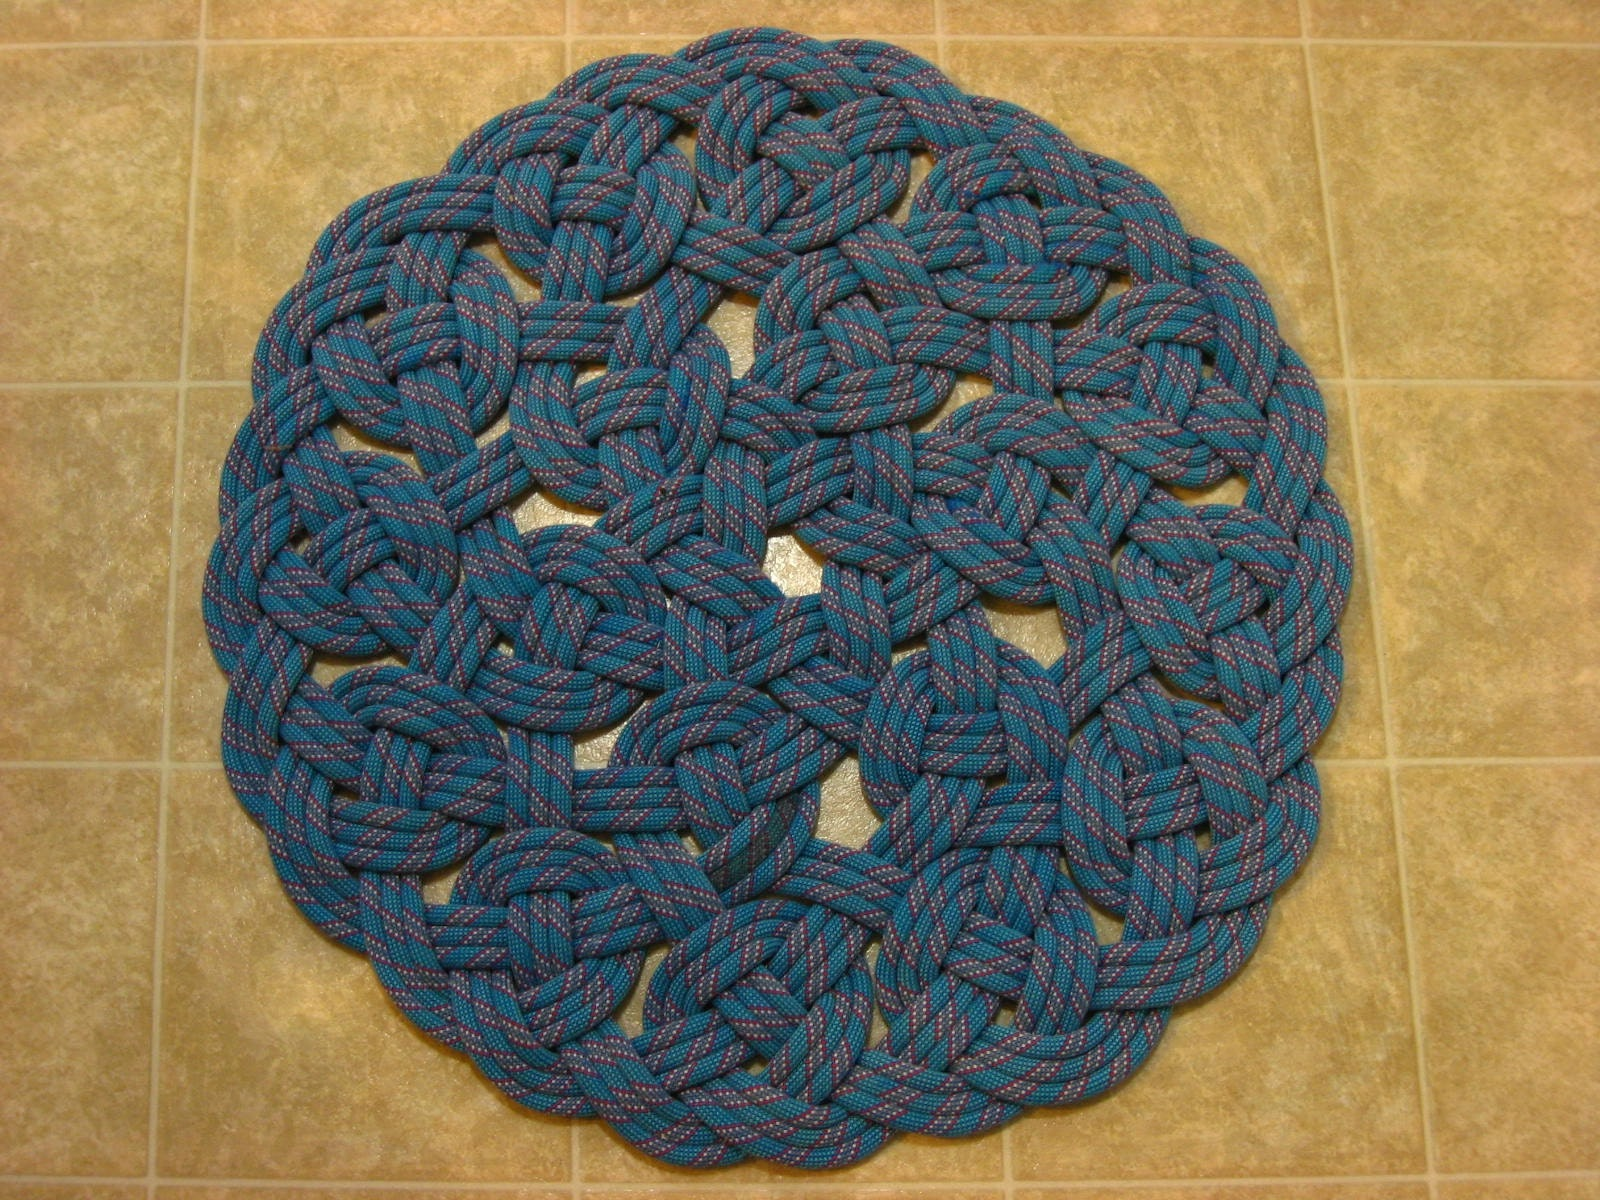 Making Area Rugs From Recycled Jeans : Braided Jeans Rug: Cutting